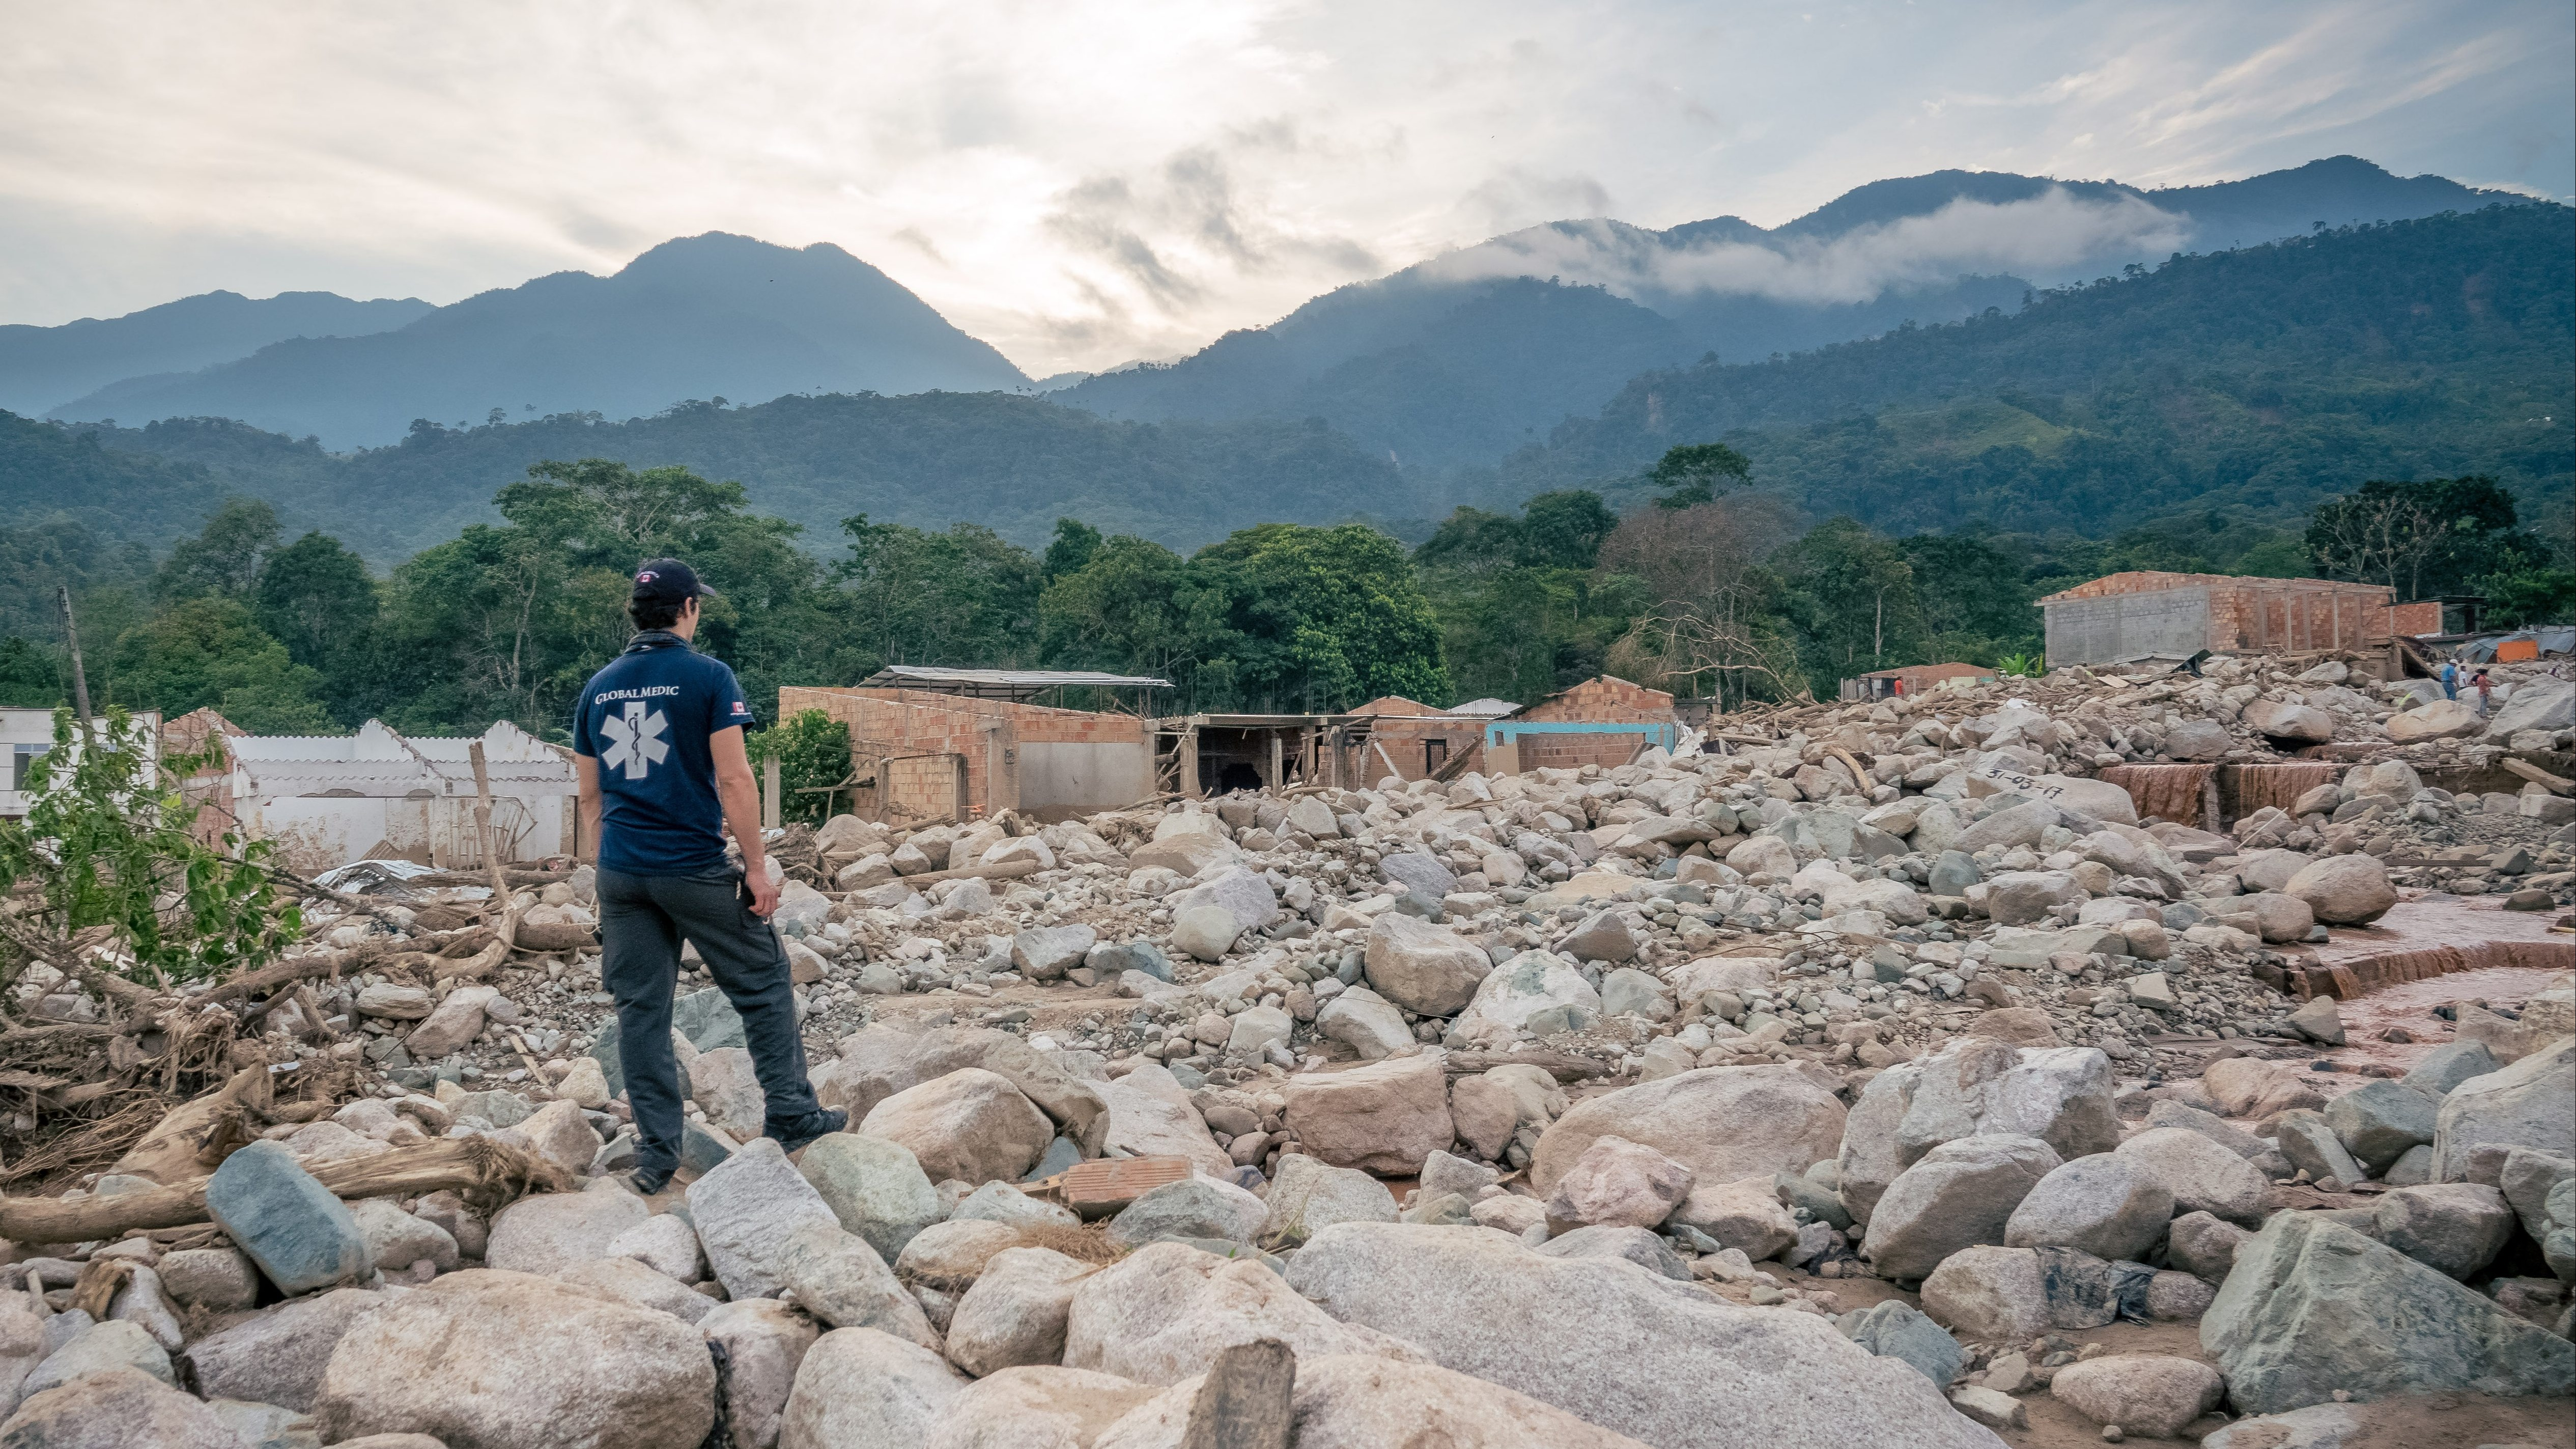 Drone mapping for humanitarian aid and civil protection